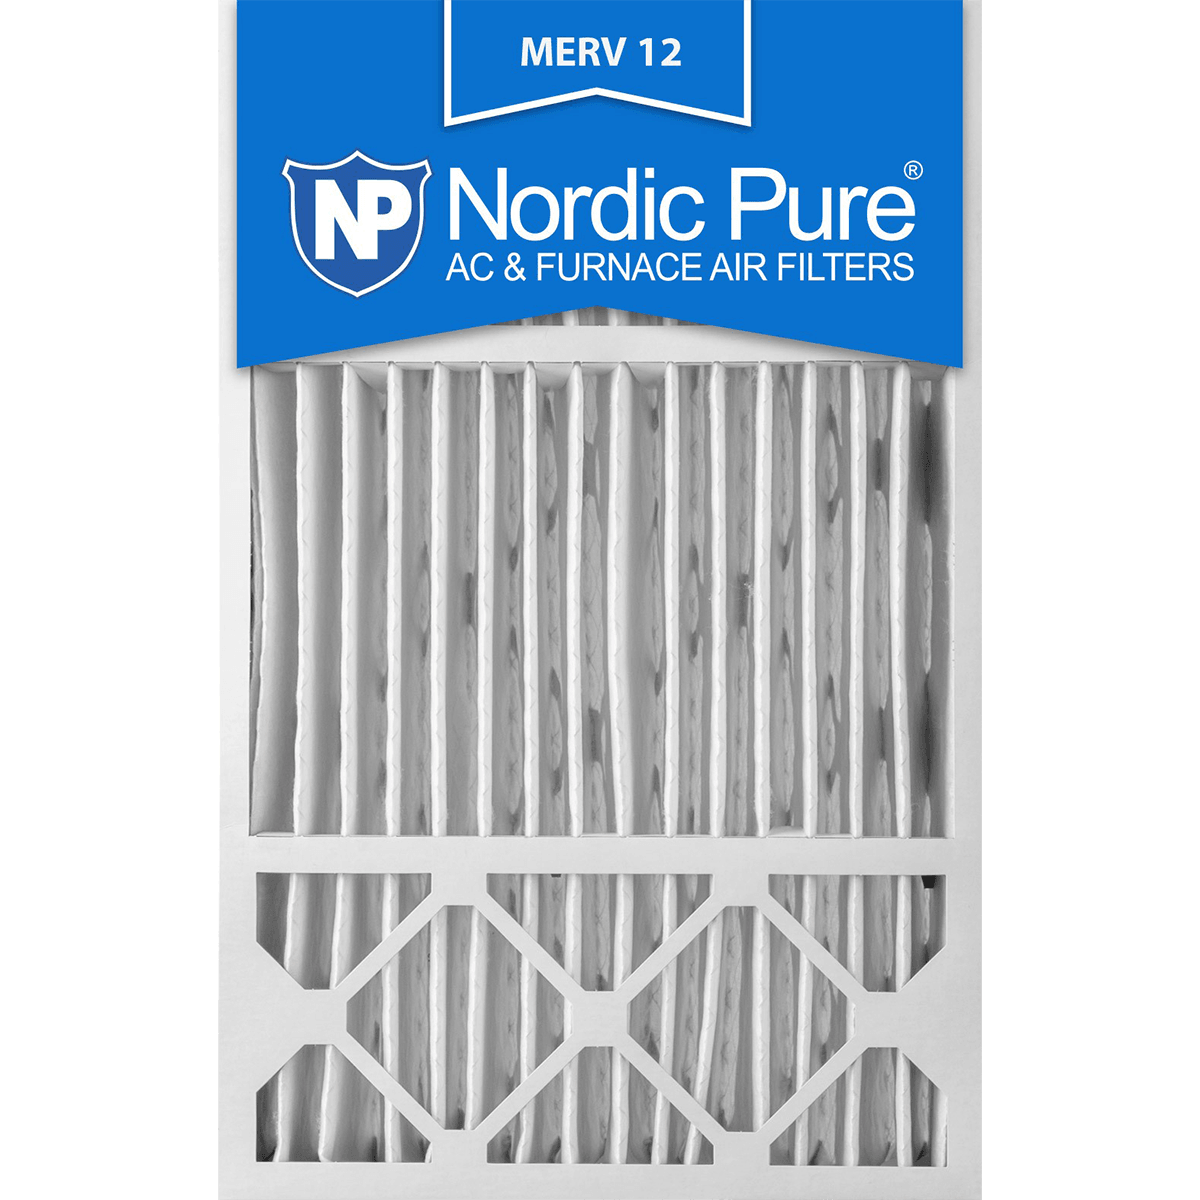 Buy Cheap Nordic Pure Merv 12 Pleated Furnace Filter 16x25x5 16x25x5hm12 1 Pure Products Furnace Filters Merv